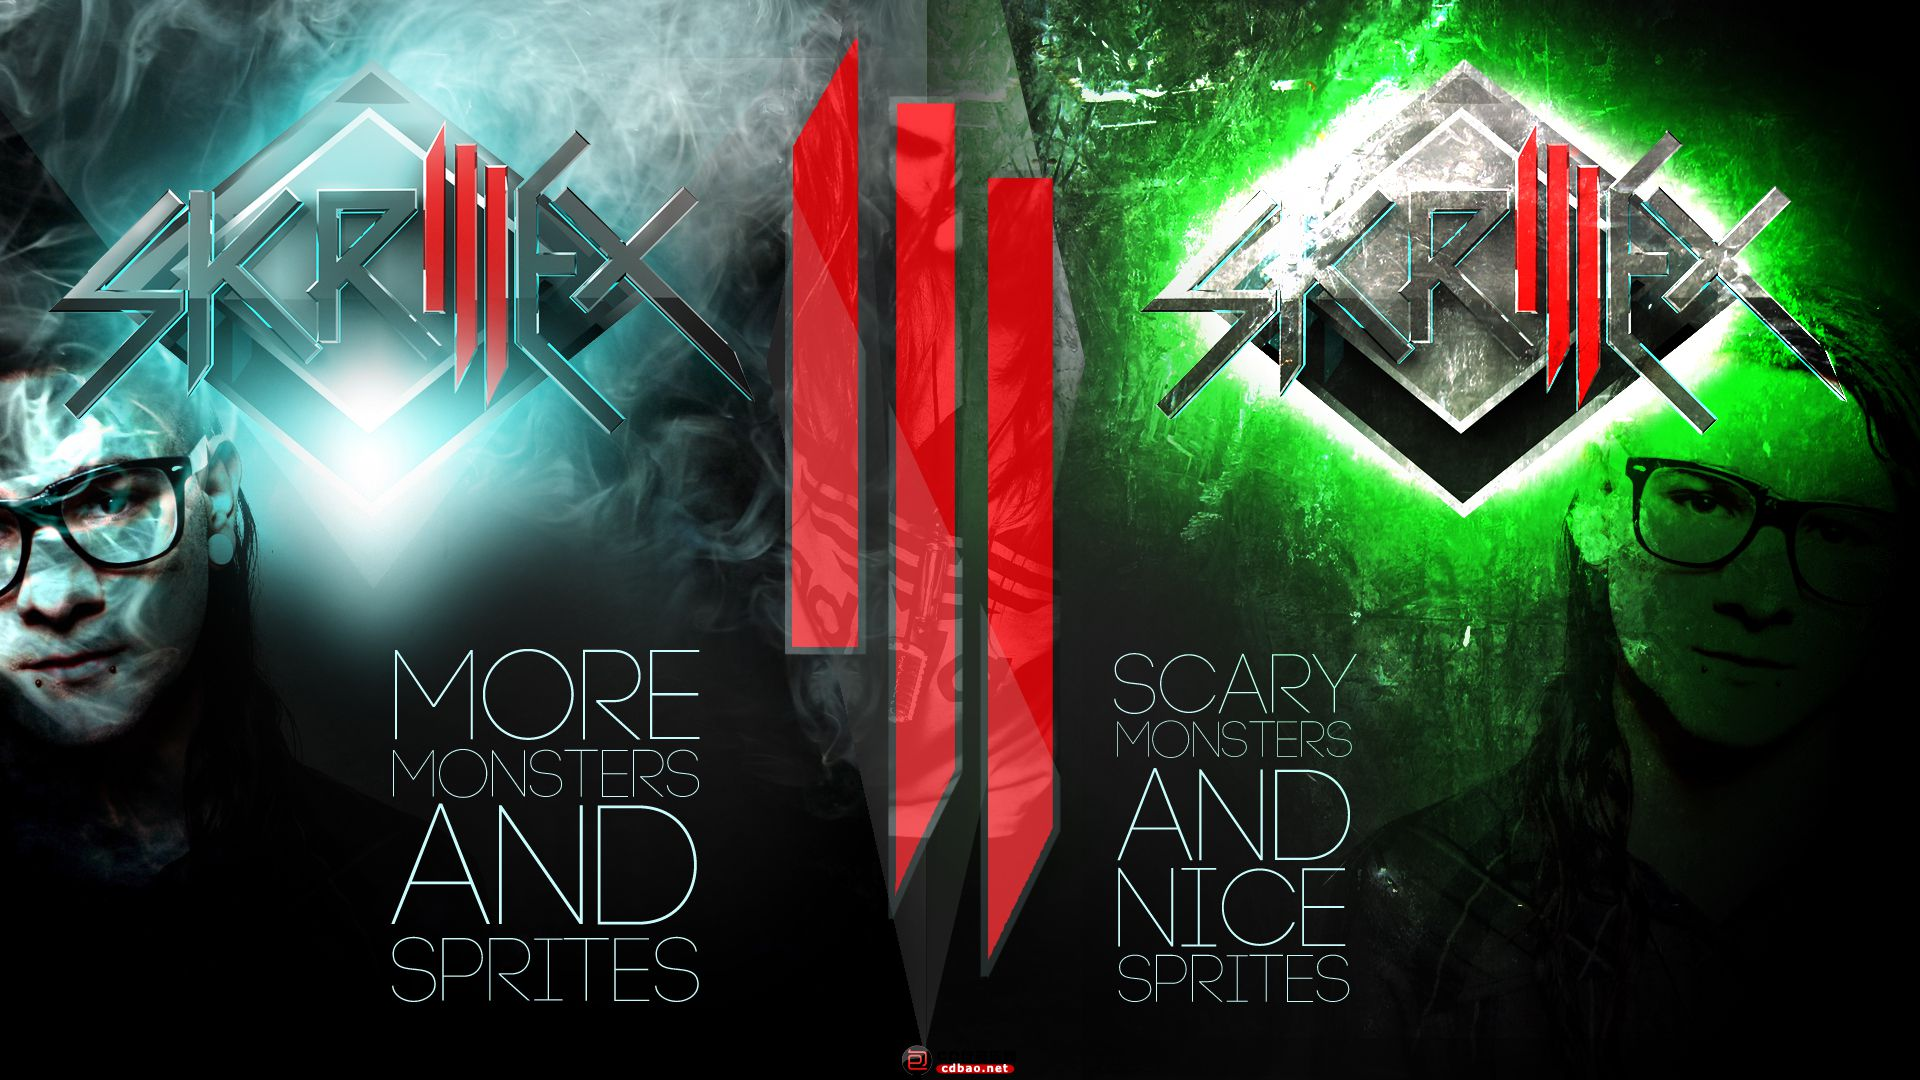 Skrillex Wallpaper Scary Monsters And Nice Sprites.jpg